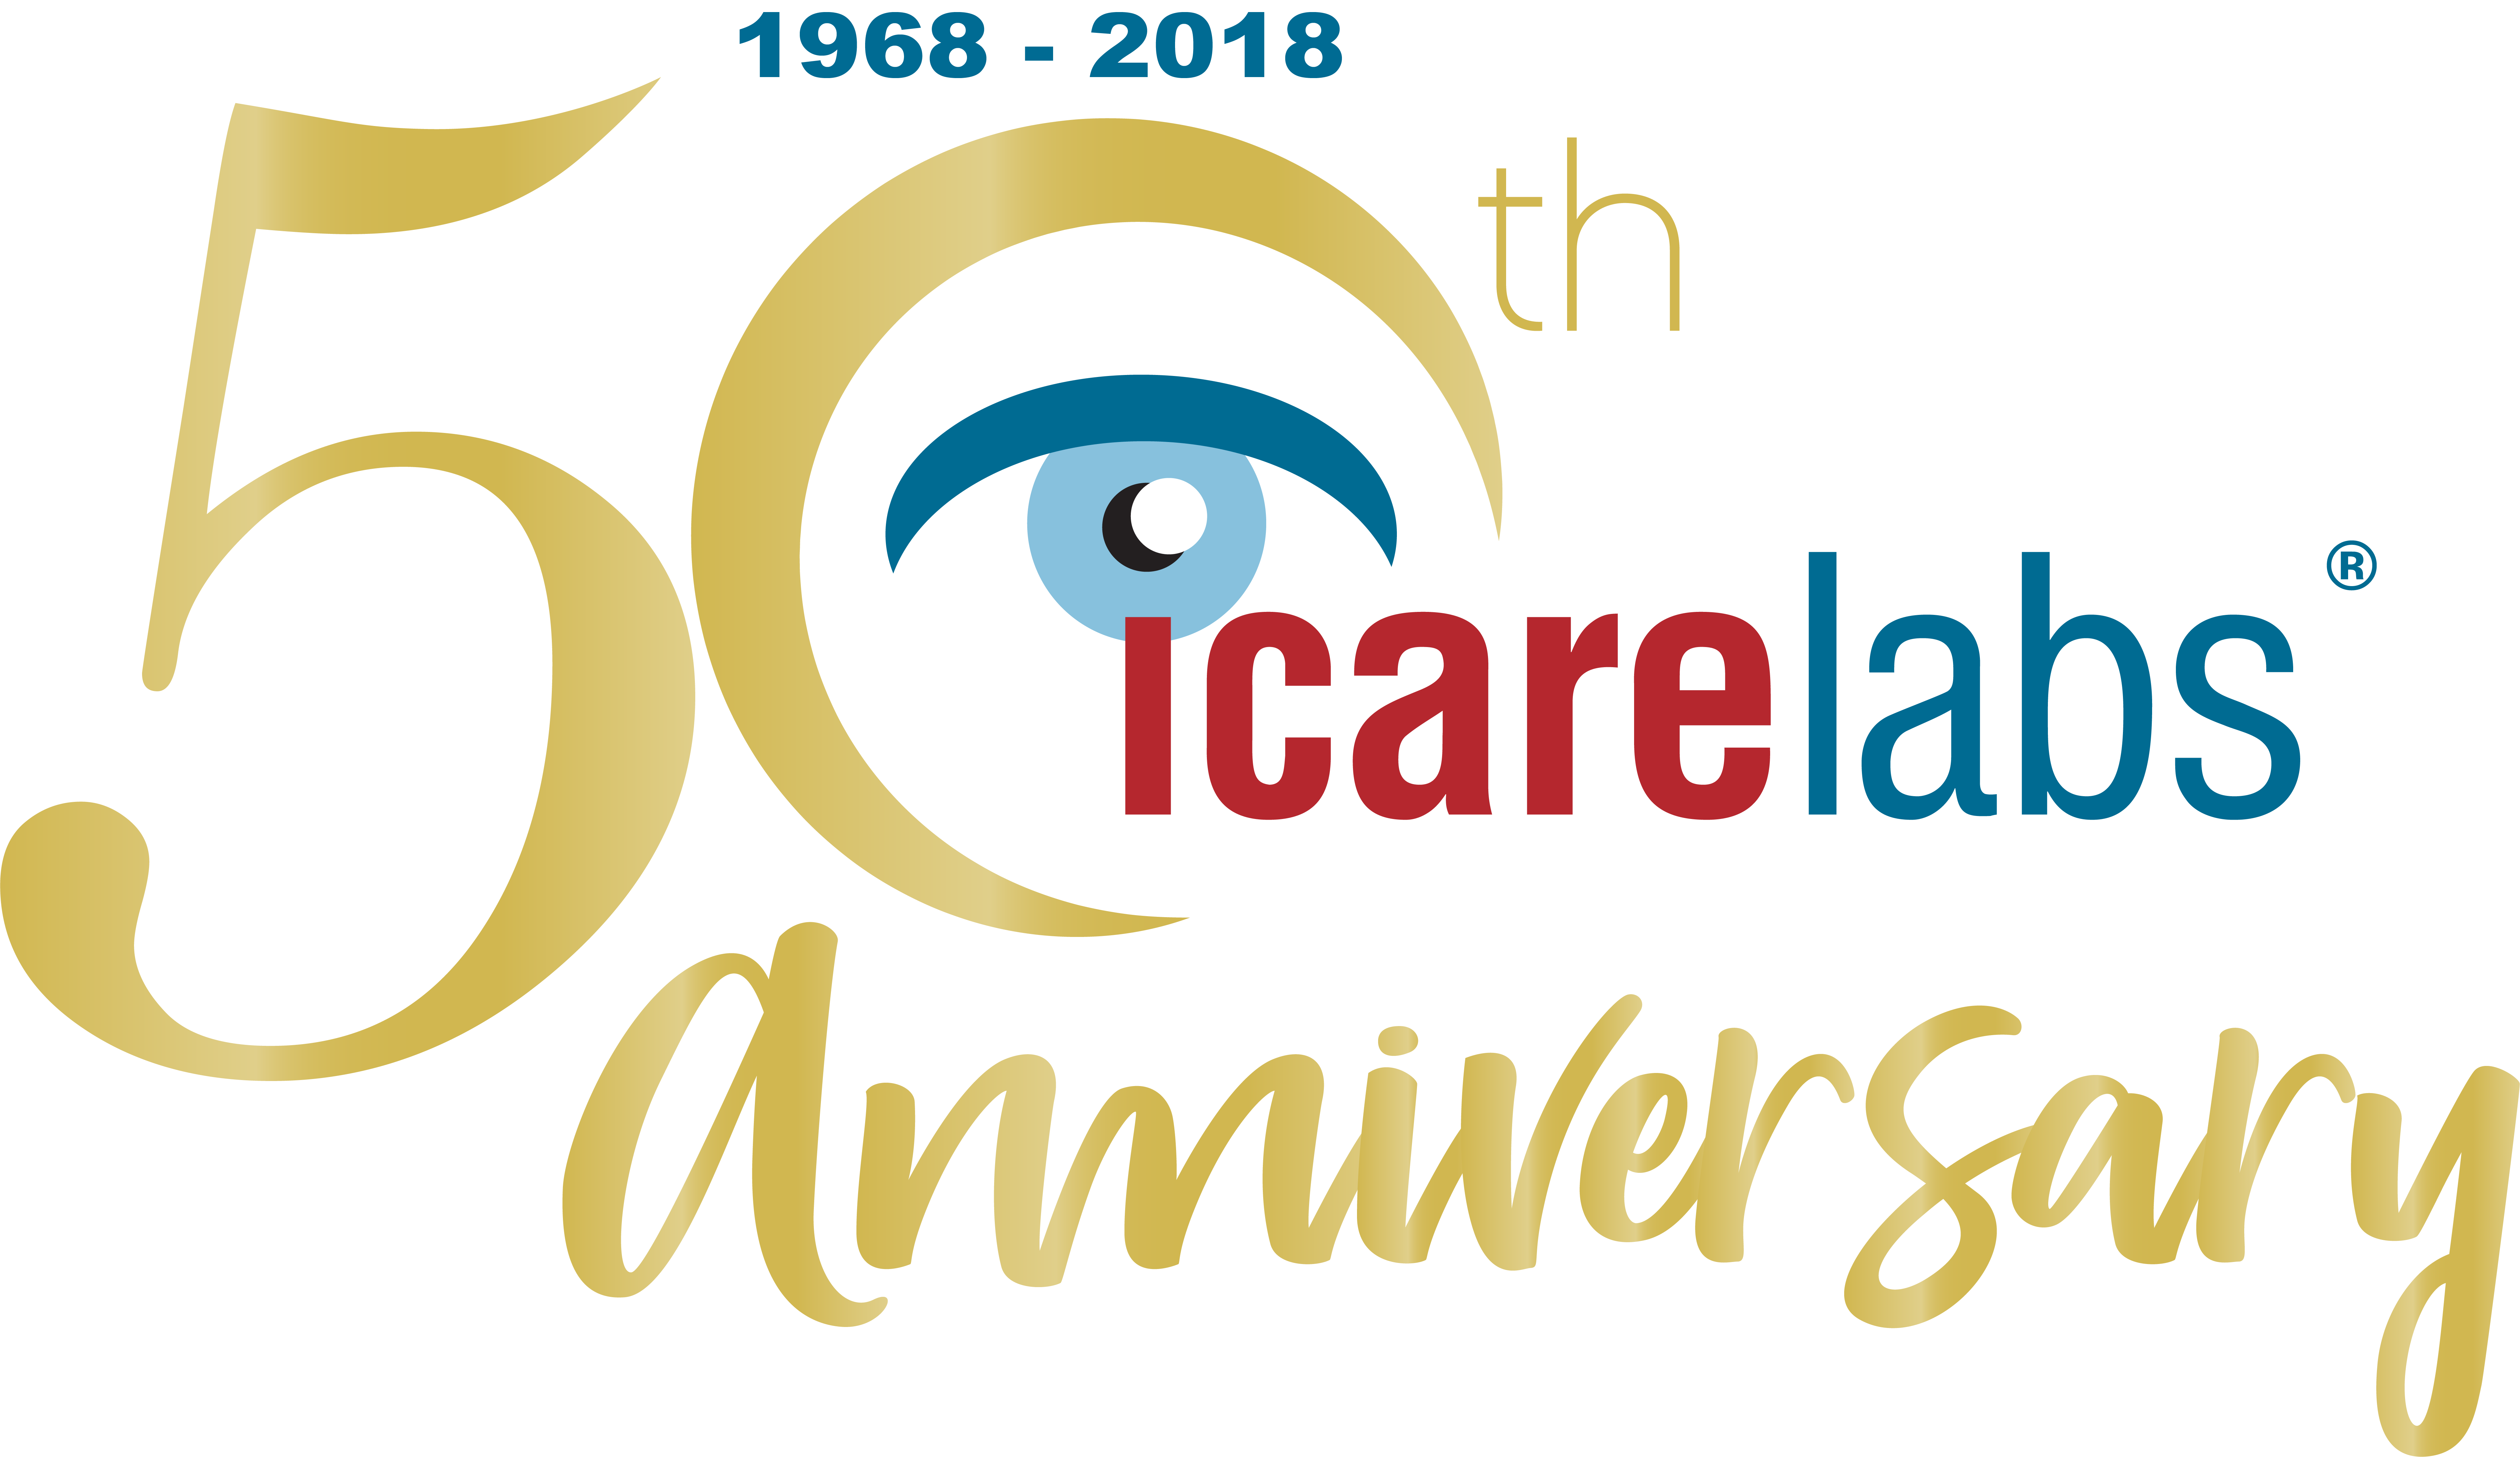 IcareLabs 50th Anniversary Family Operated Wholesale Optical Lab